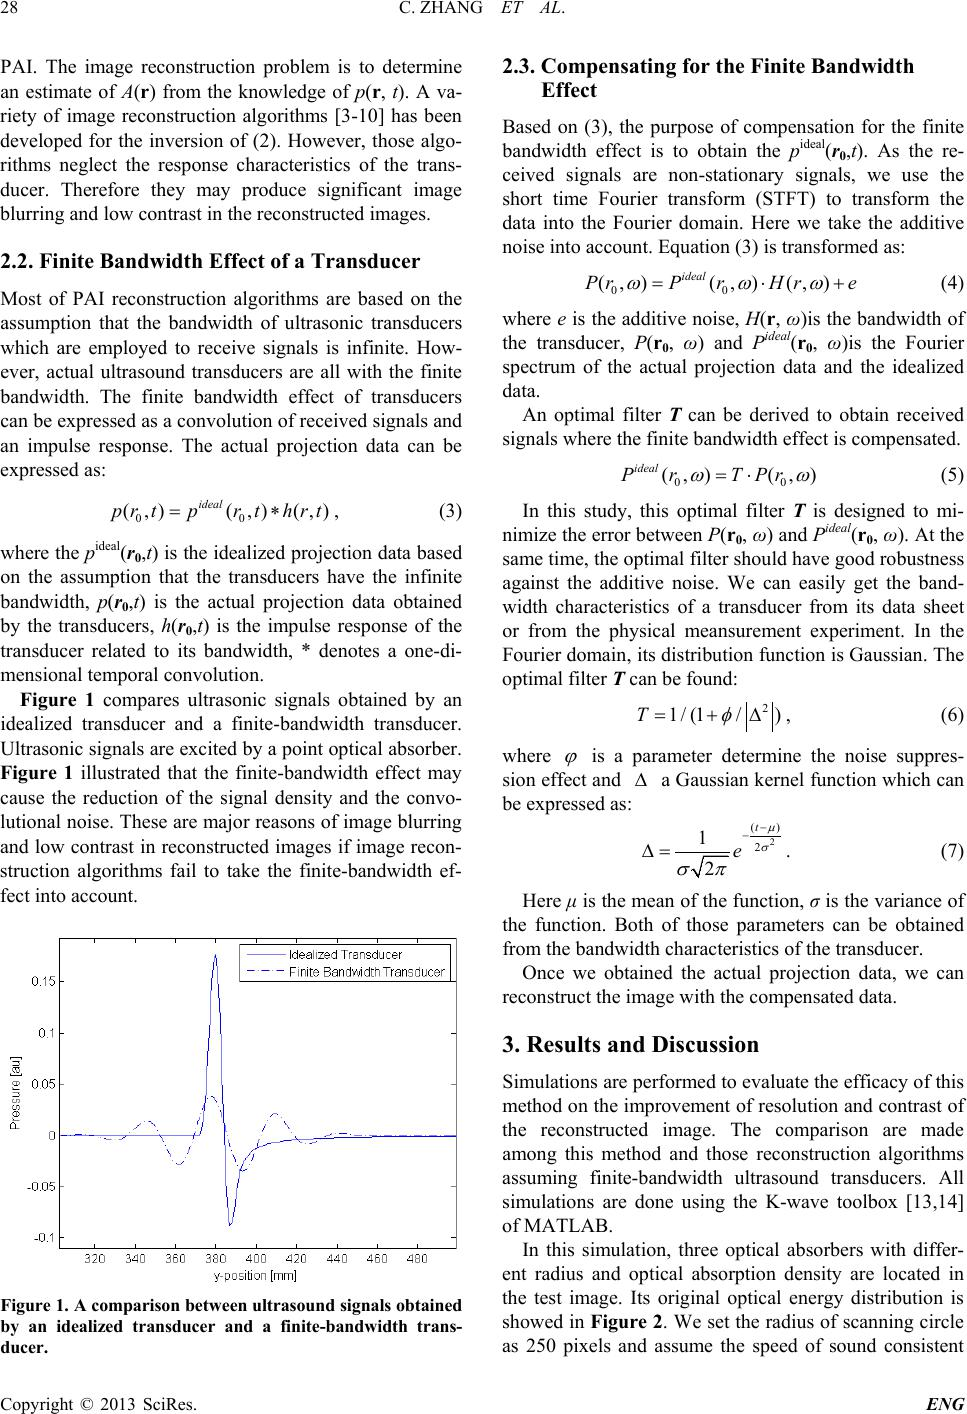 Compensation of Finite Bandwidth Effect by Using an Optimal Filter